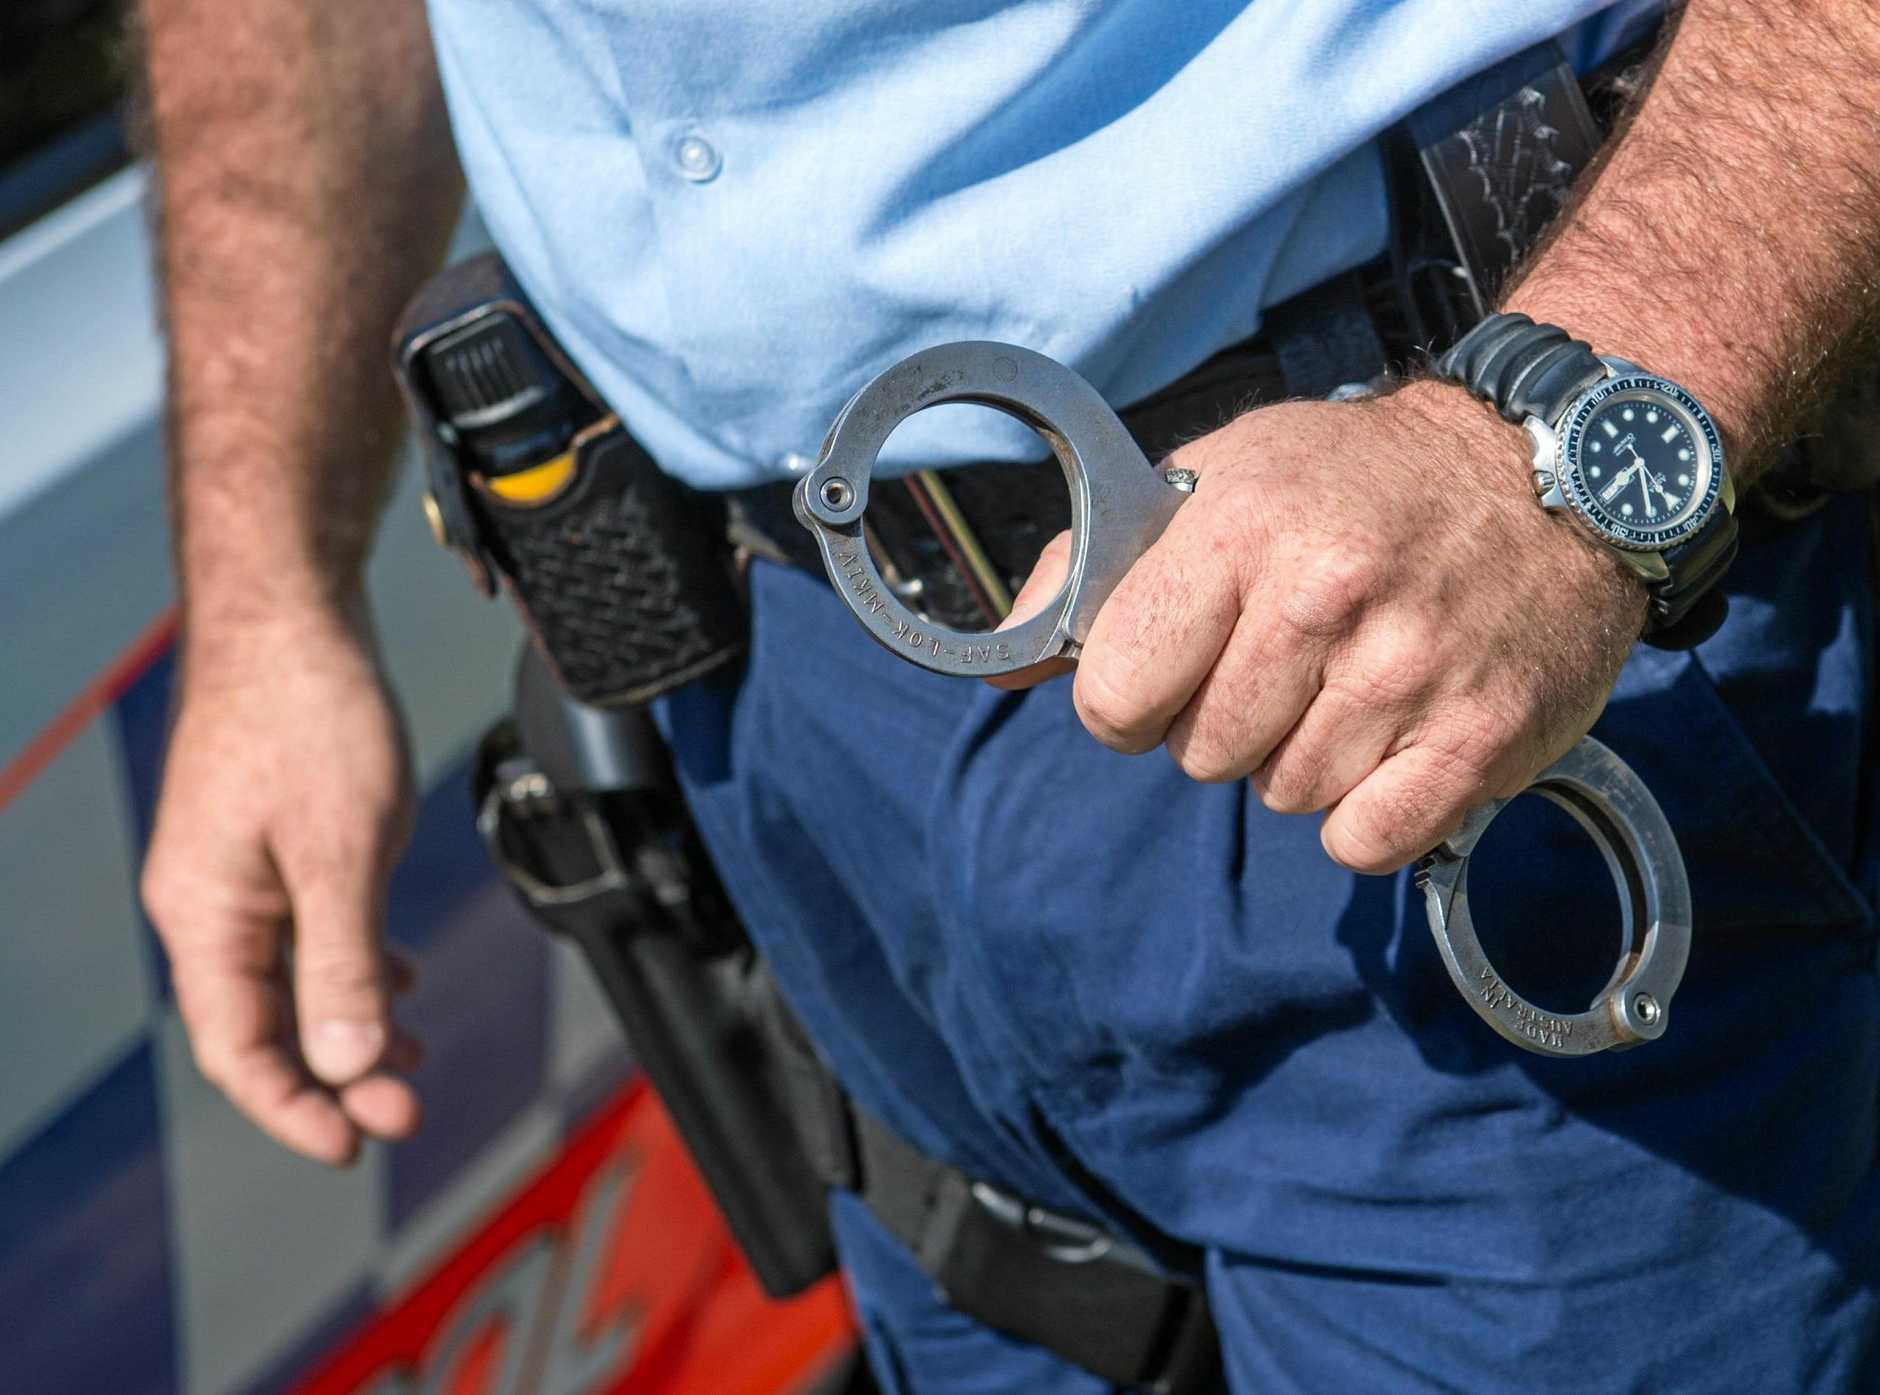 ARRESTS MADE: Police from Coffs - Clarence LAC have made a number of bicycle theft related arrests.